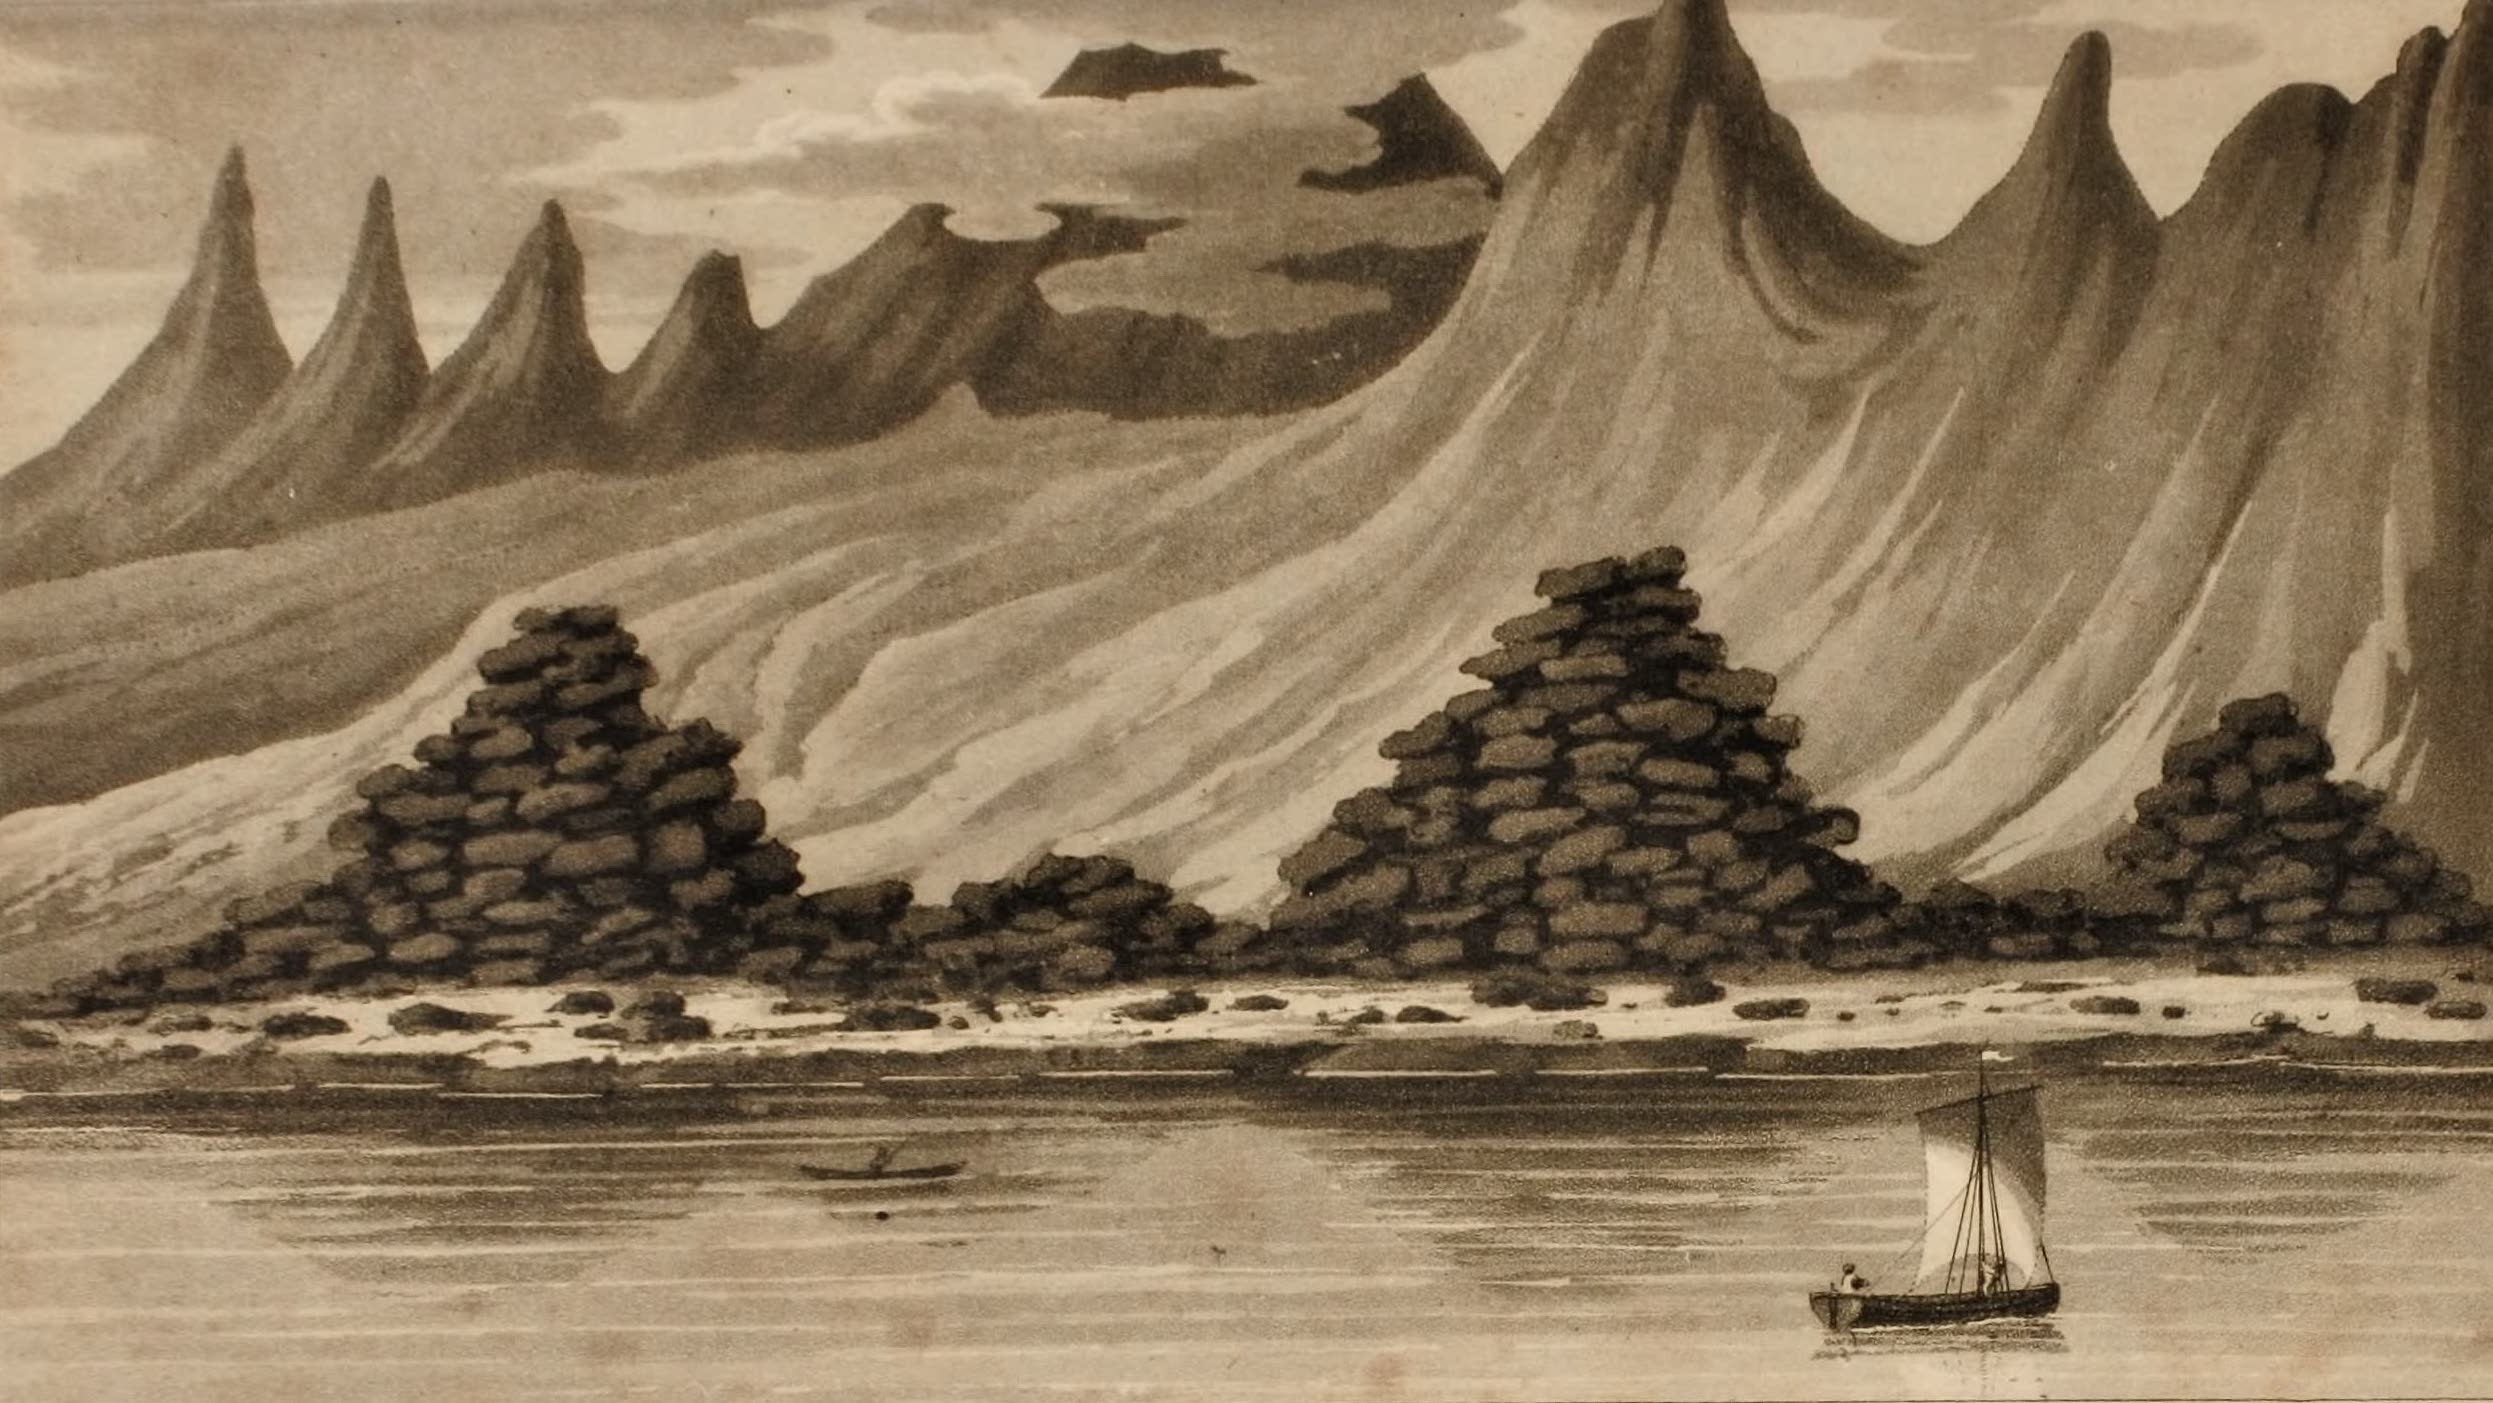 Journal of an Expedition 1400 miles up the Orinoco - Bank of the Orinoco (1822)